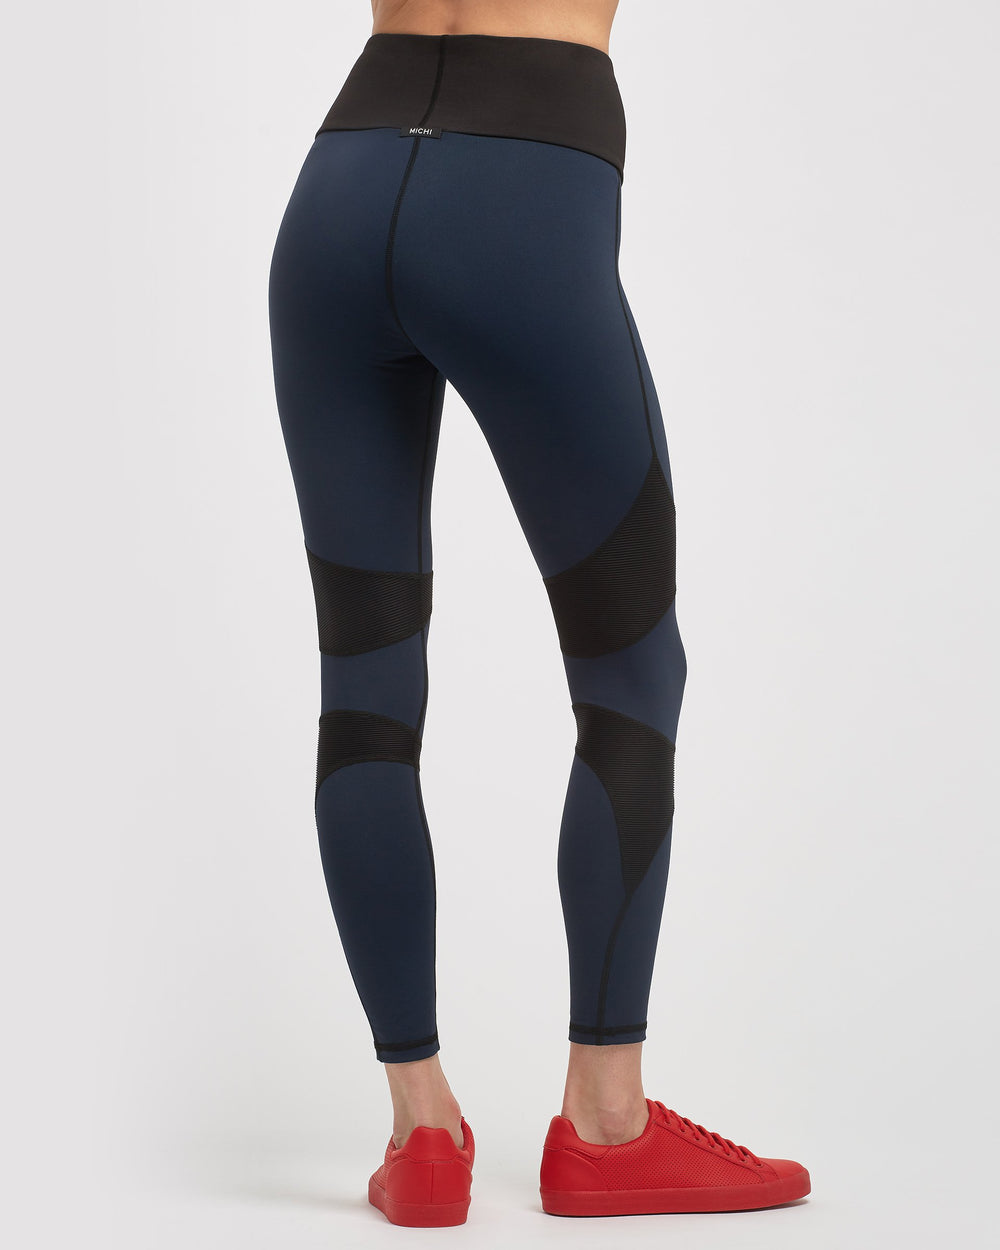 Drift High Waisted Legging - Deep Sea Navy